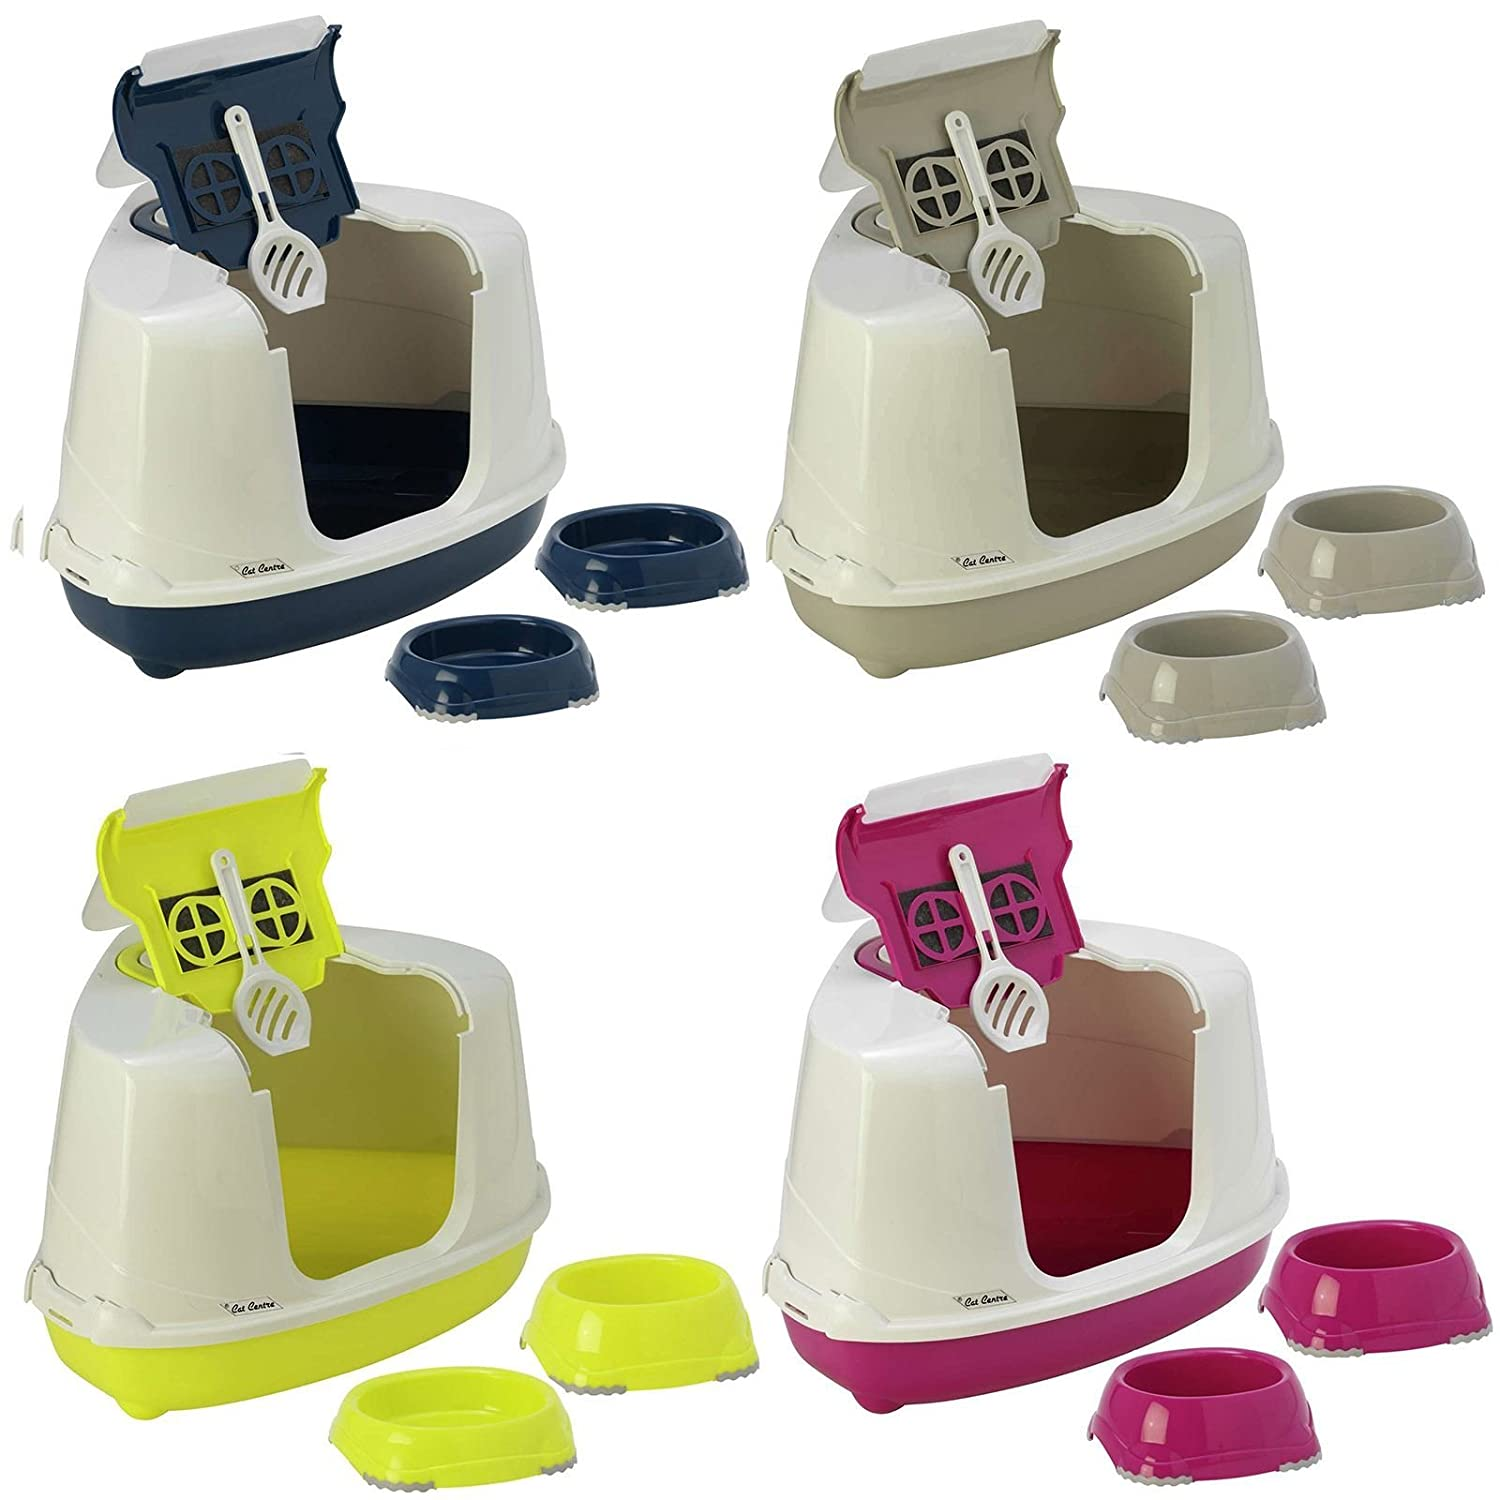 Pink Corner Cat Hooded Litter Tray + 2x0.2L Non Slip Bowls Toilet Loo Filter Scoop Pan Bolting Darts